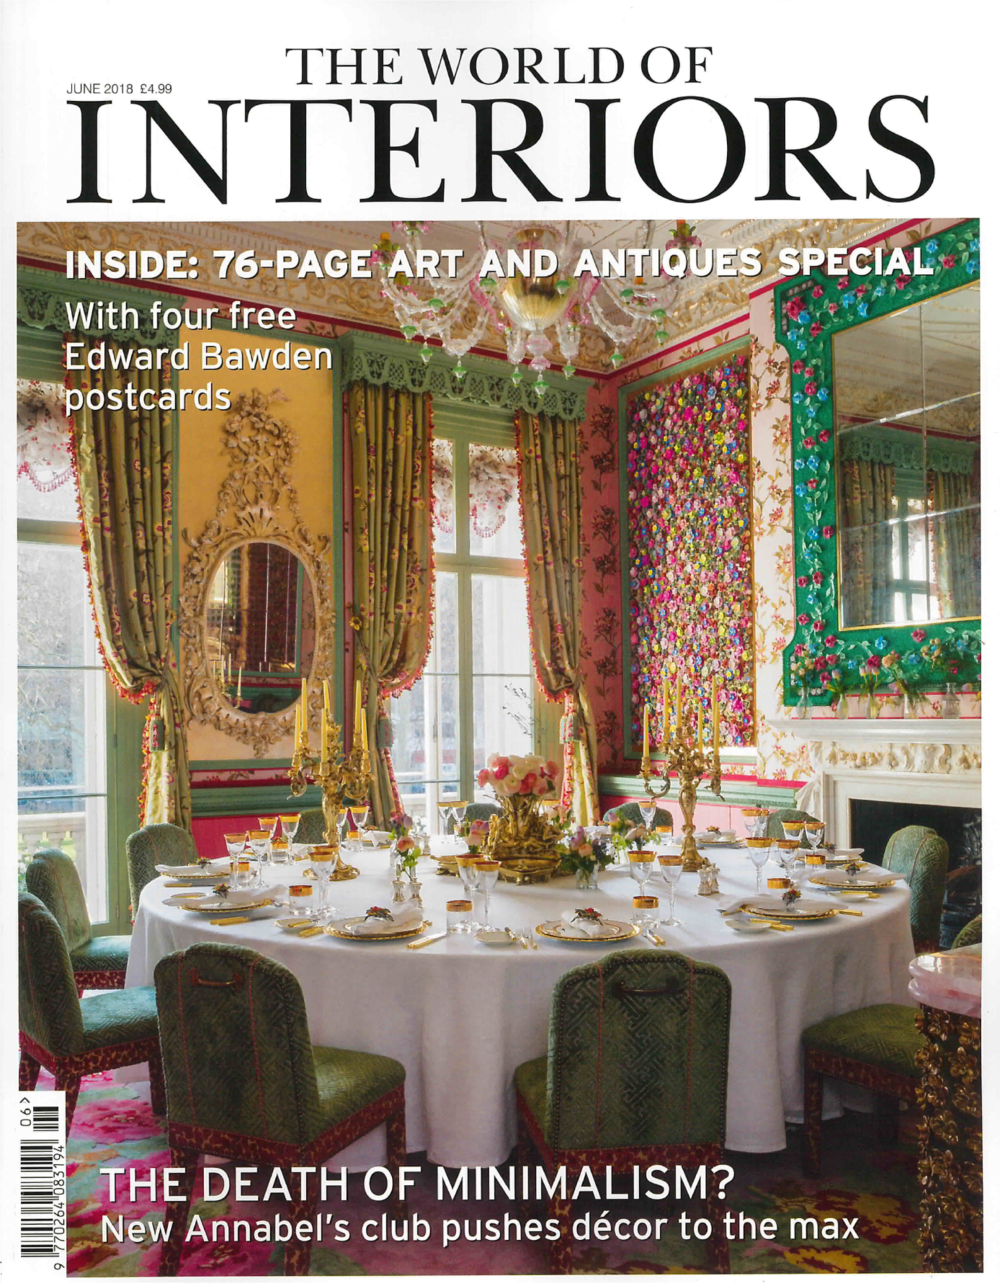 THE WORLD OF INTERIORS MAGAZINE JUNE 2018